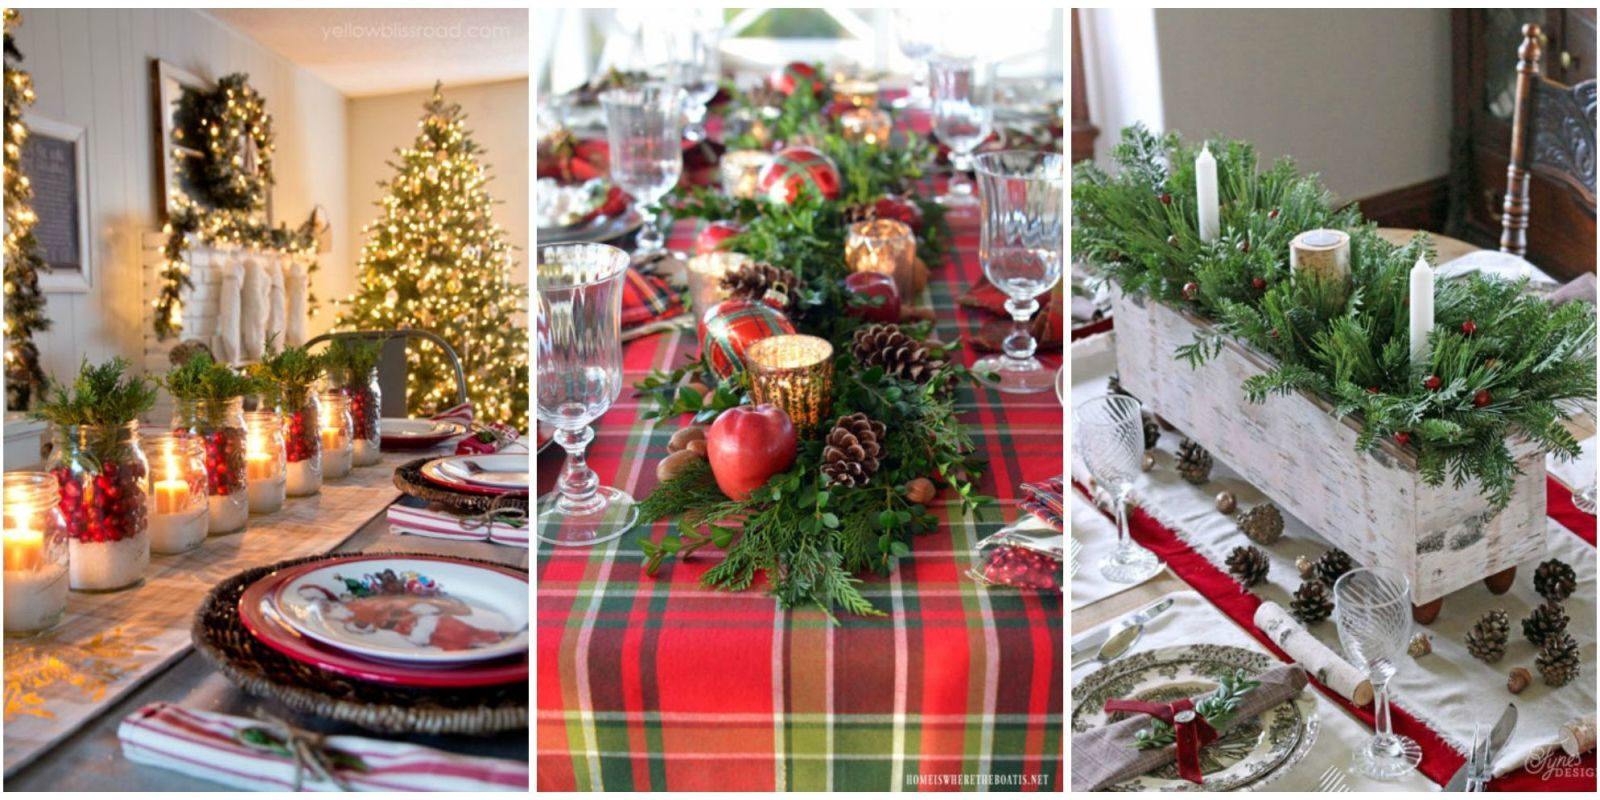 Hosting a get-together for family and friends this Christmas? Get inspired to make your holiday table sparkle with these ideas for special decorations and ... & 49 Best Christmas Table Settings - Decorations and Centerpiece ...